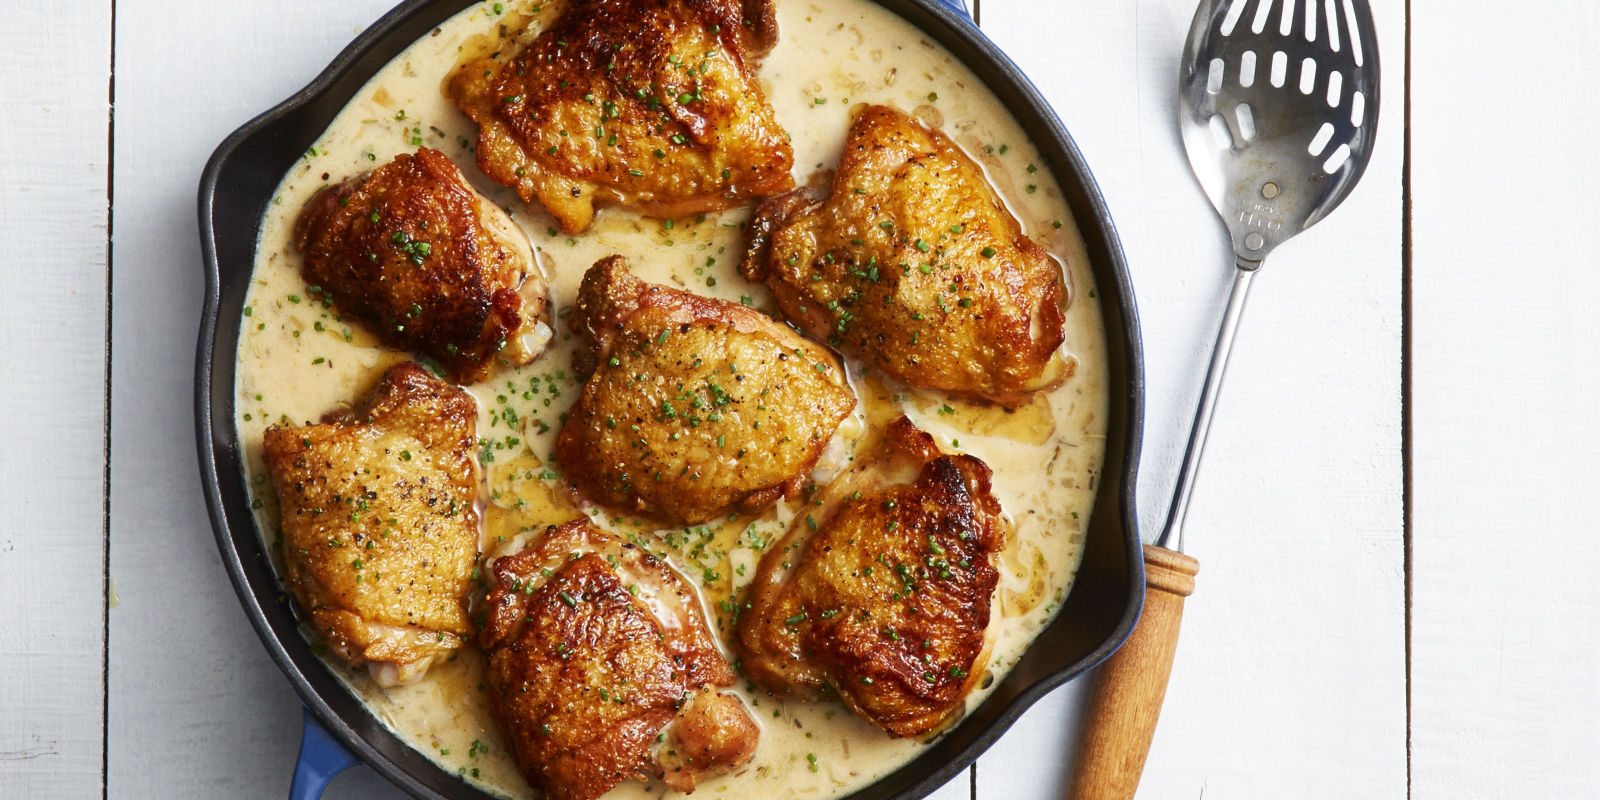 Chicken dinner recipes can't be beat for versatility and universal palate-pleasing. Find your family's favourites from baked, grilled, roasted or sautéed chicken that's cooked to juicy perfection every time.A lean protein source, you'll find plenty of inspiration with more than 1, chicken dinner ideas at your fingertips when you need them.